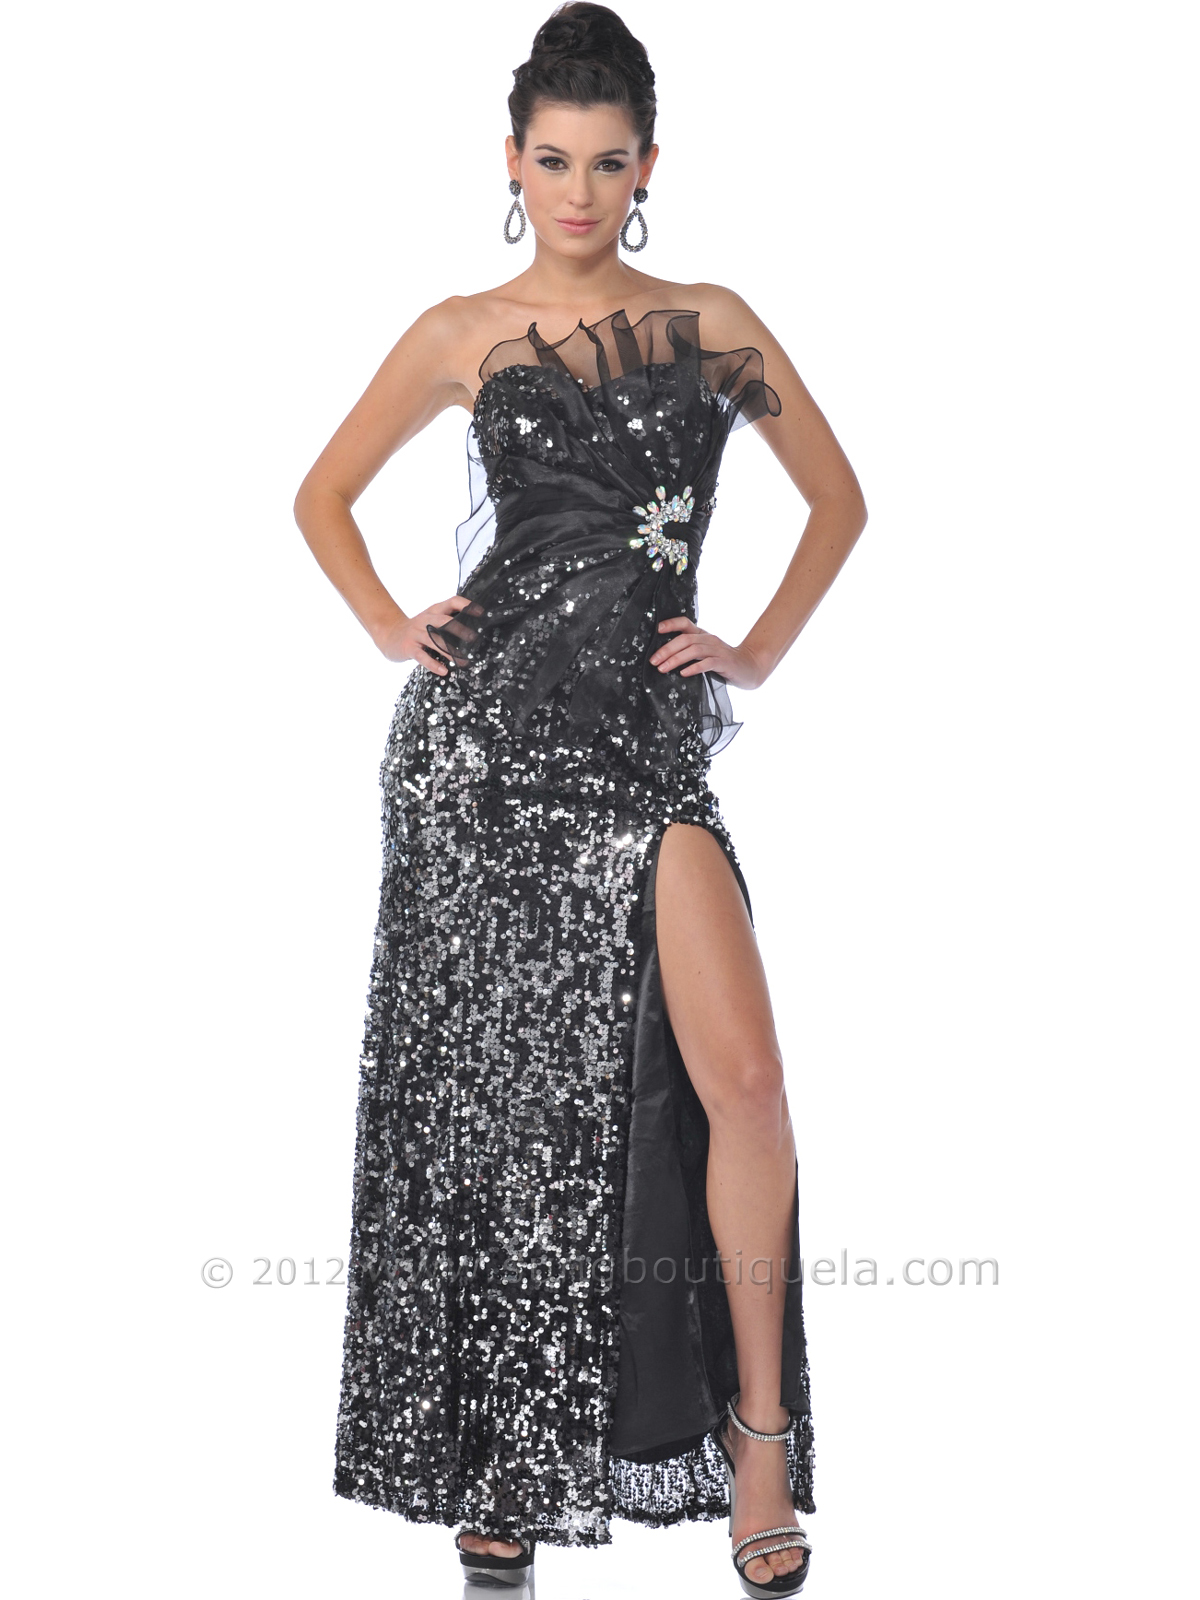 Black Silver Strapless Sequin Evening Dress